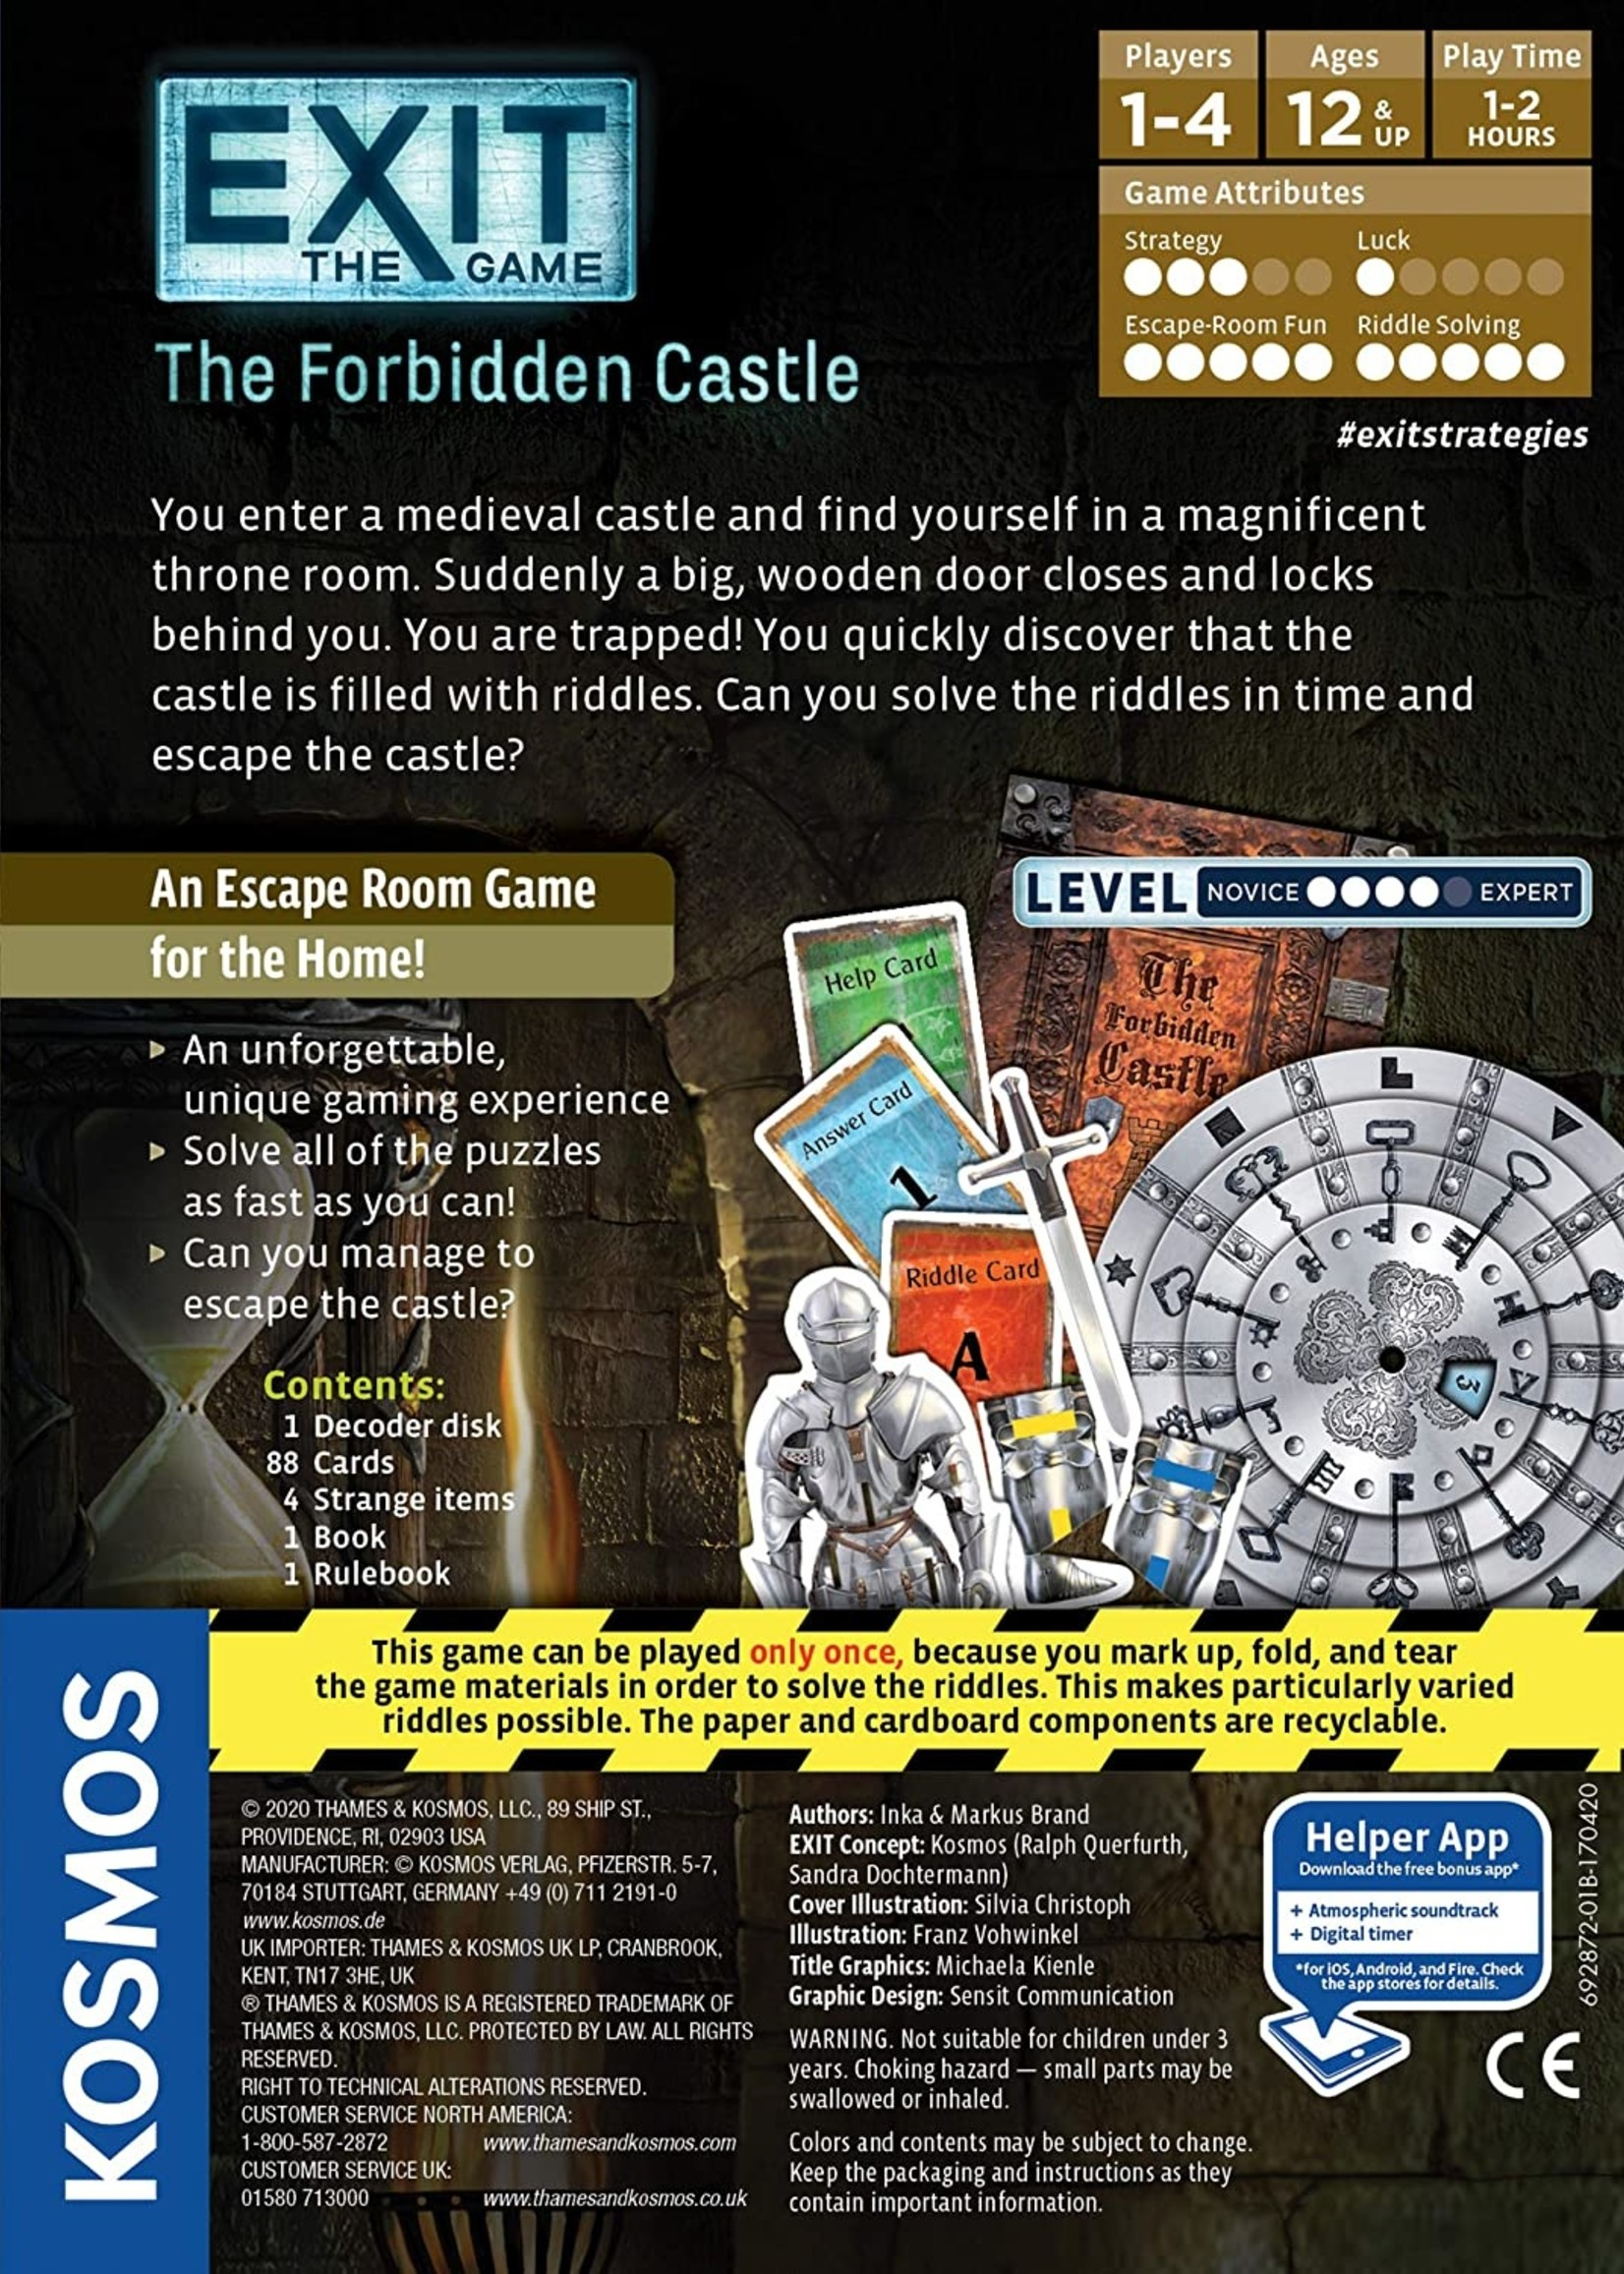 Exit The Game The Forbidden Castle